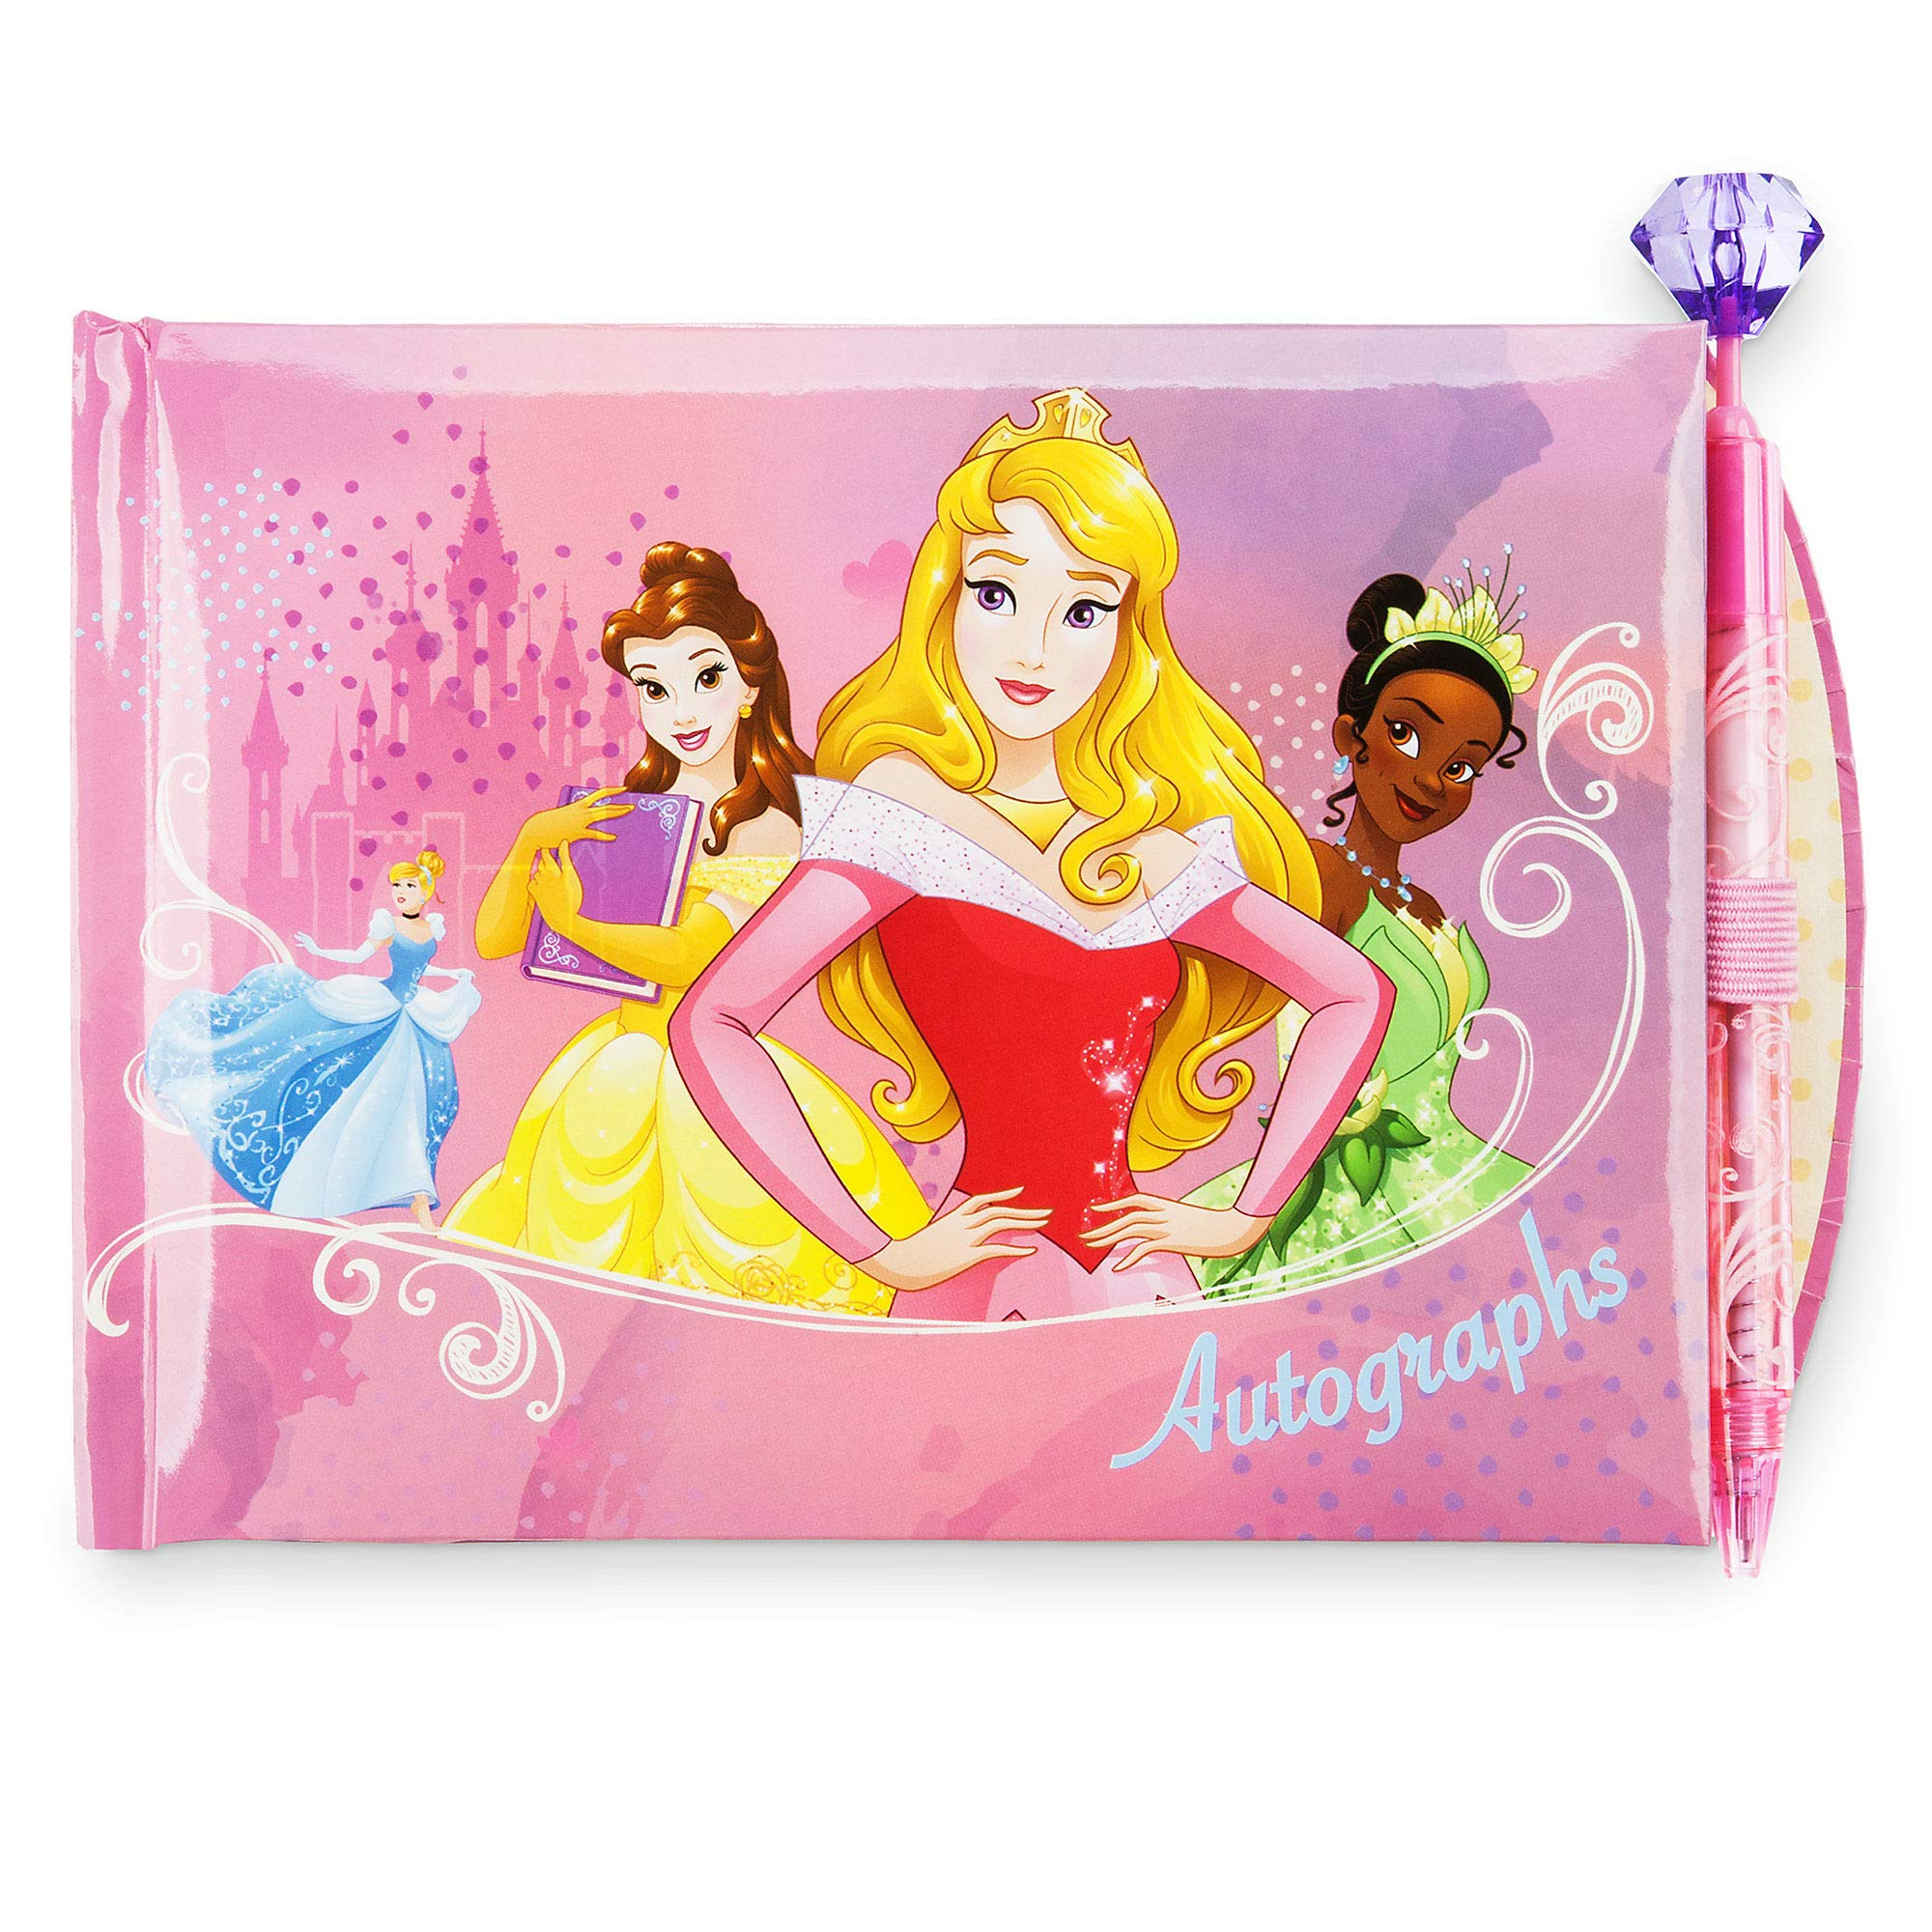 Disney Princess Autograph Book Featuring Cinderella, Belle, Aurora, Tiana, Jasmine, and Snow White Gemstone Topped Pen by Disney